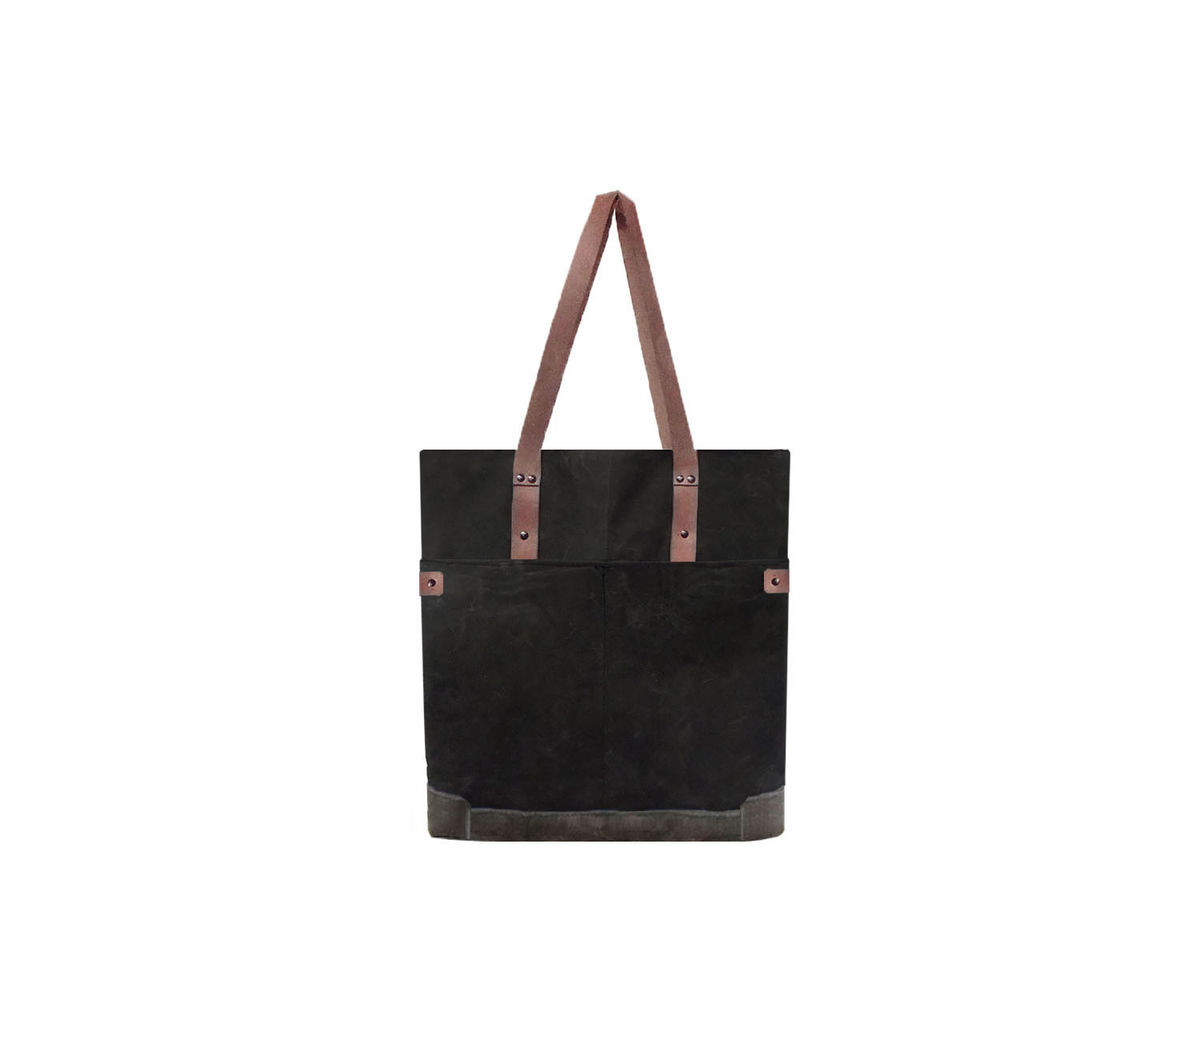 Quarters Pocket Waxed Canvas Tote - Resistance Black and Leather - product images  of